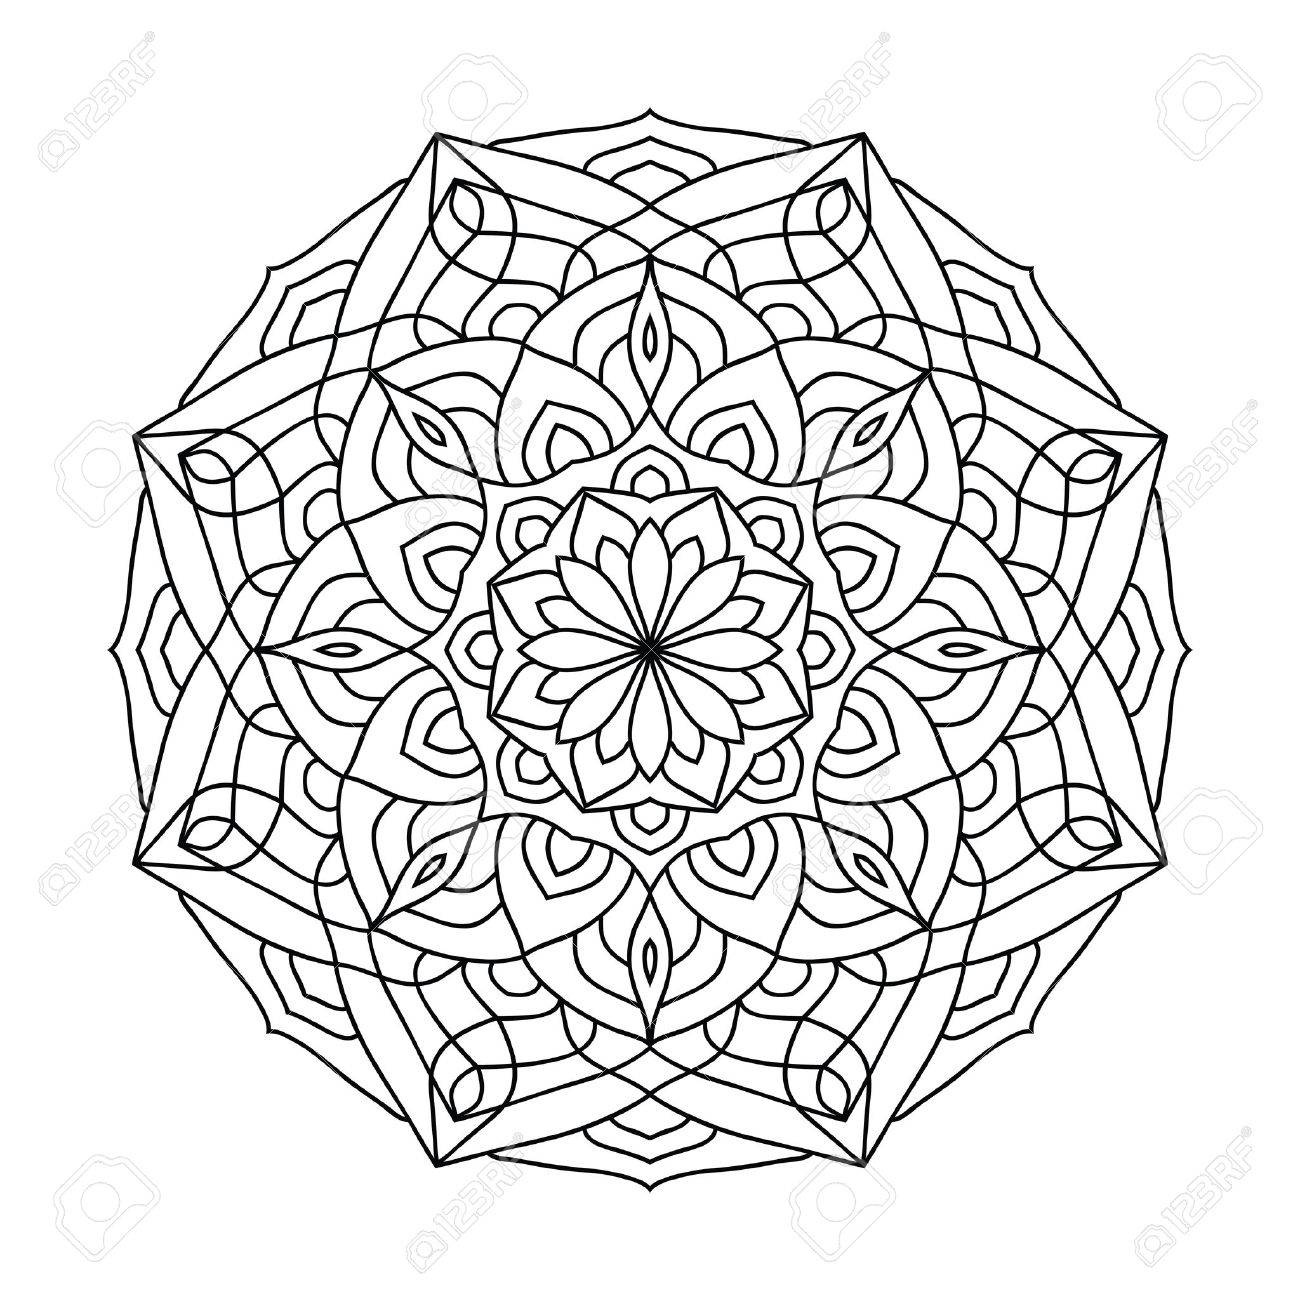 Mandala Coloring Book For Adults Ethnic Decorative Amulet Vector Illustration In Tribal